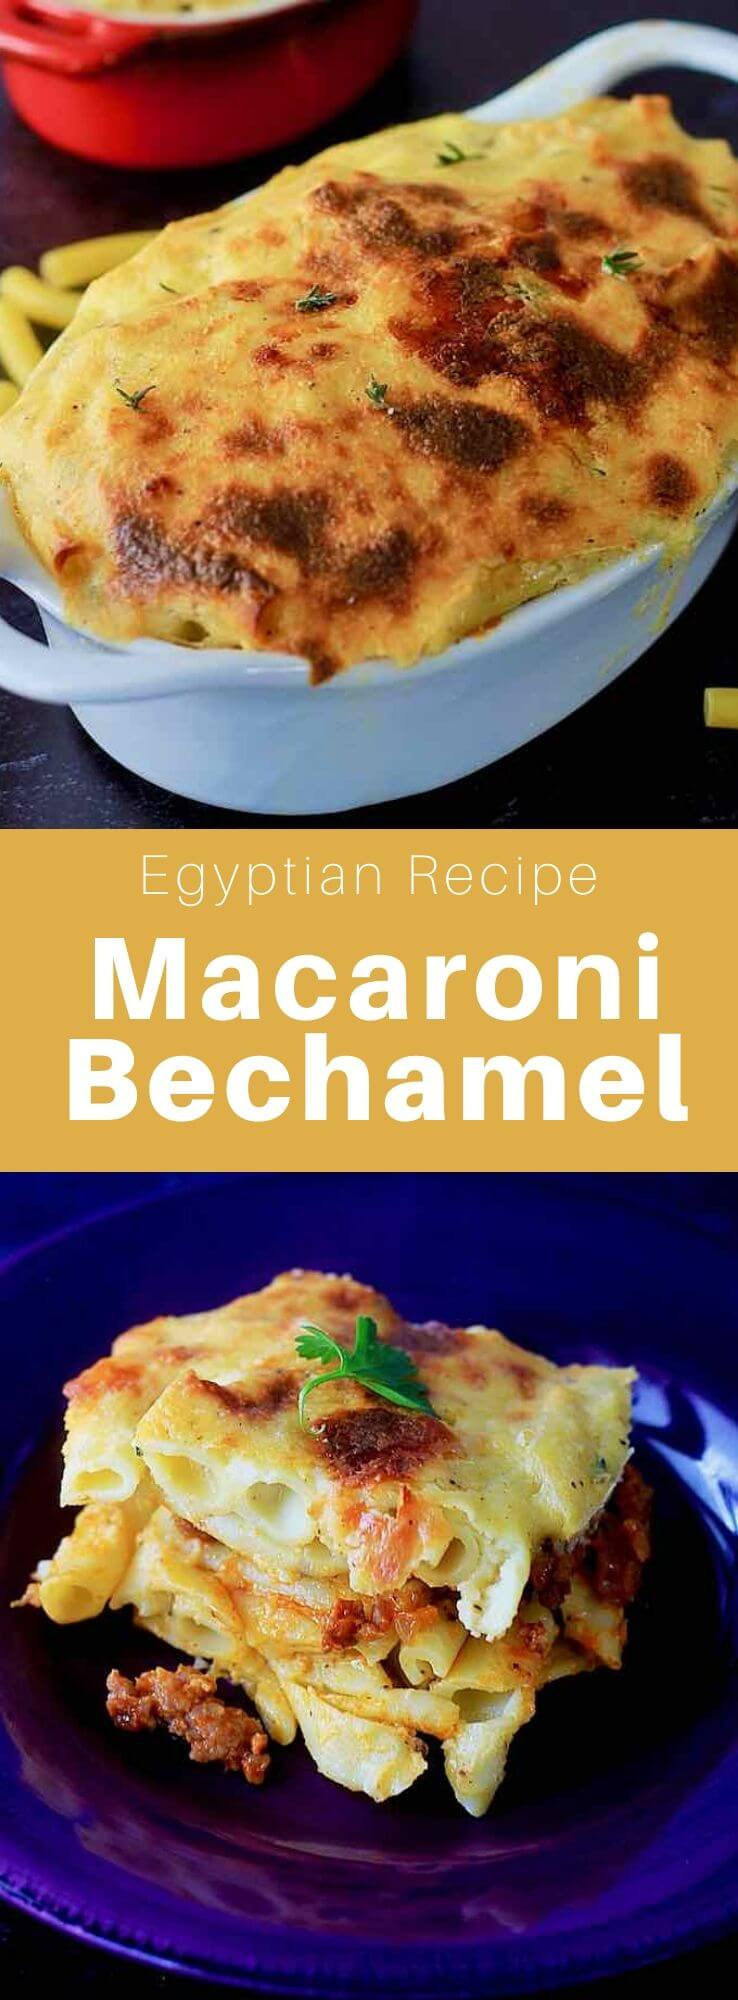 Macaroni bechamel is a popular dish from Egypt that is prepared with spicy ground beef between layers of penne with béchamel. #Egypt #EgyptianCuisine #EgyptianFood #EgyptianRecipe #WorldCuisine #196flavors